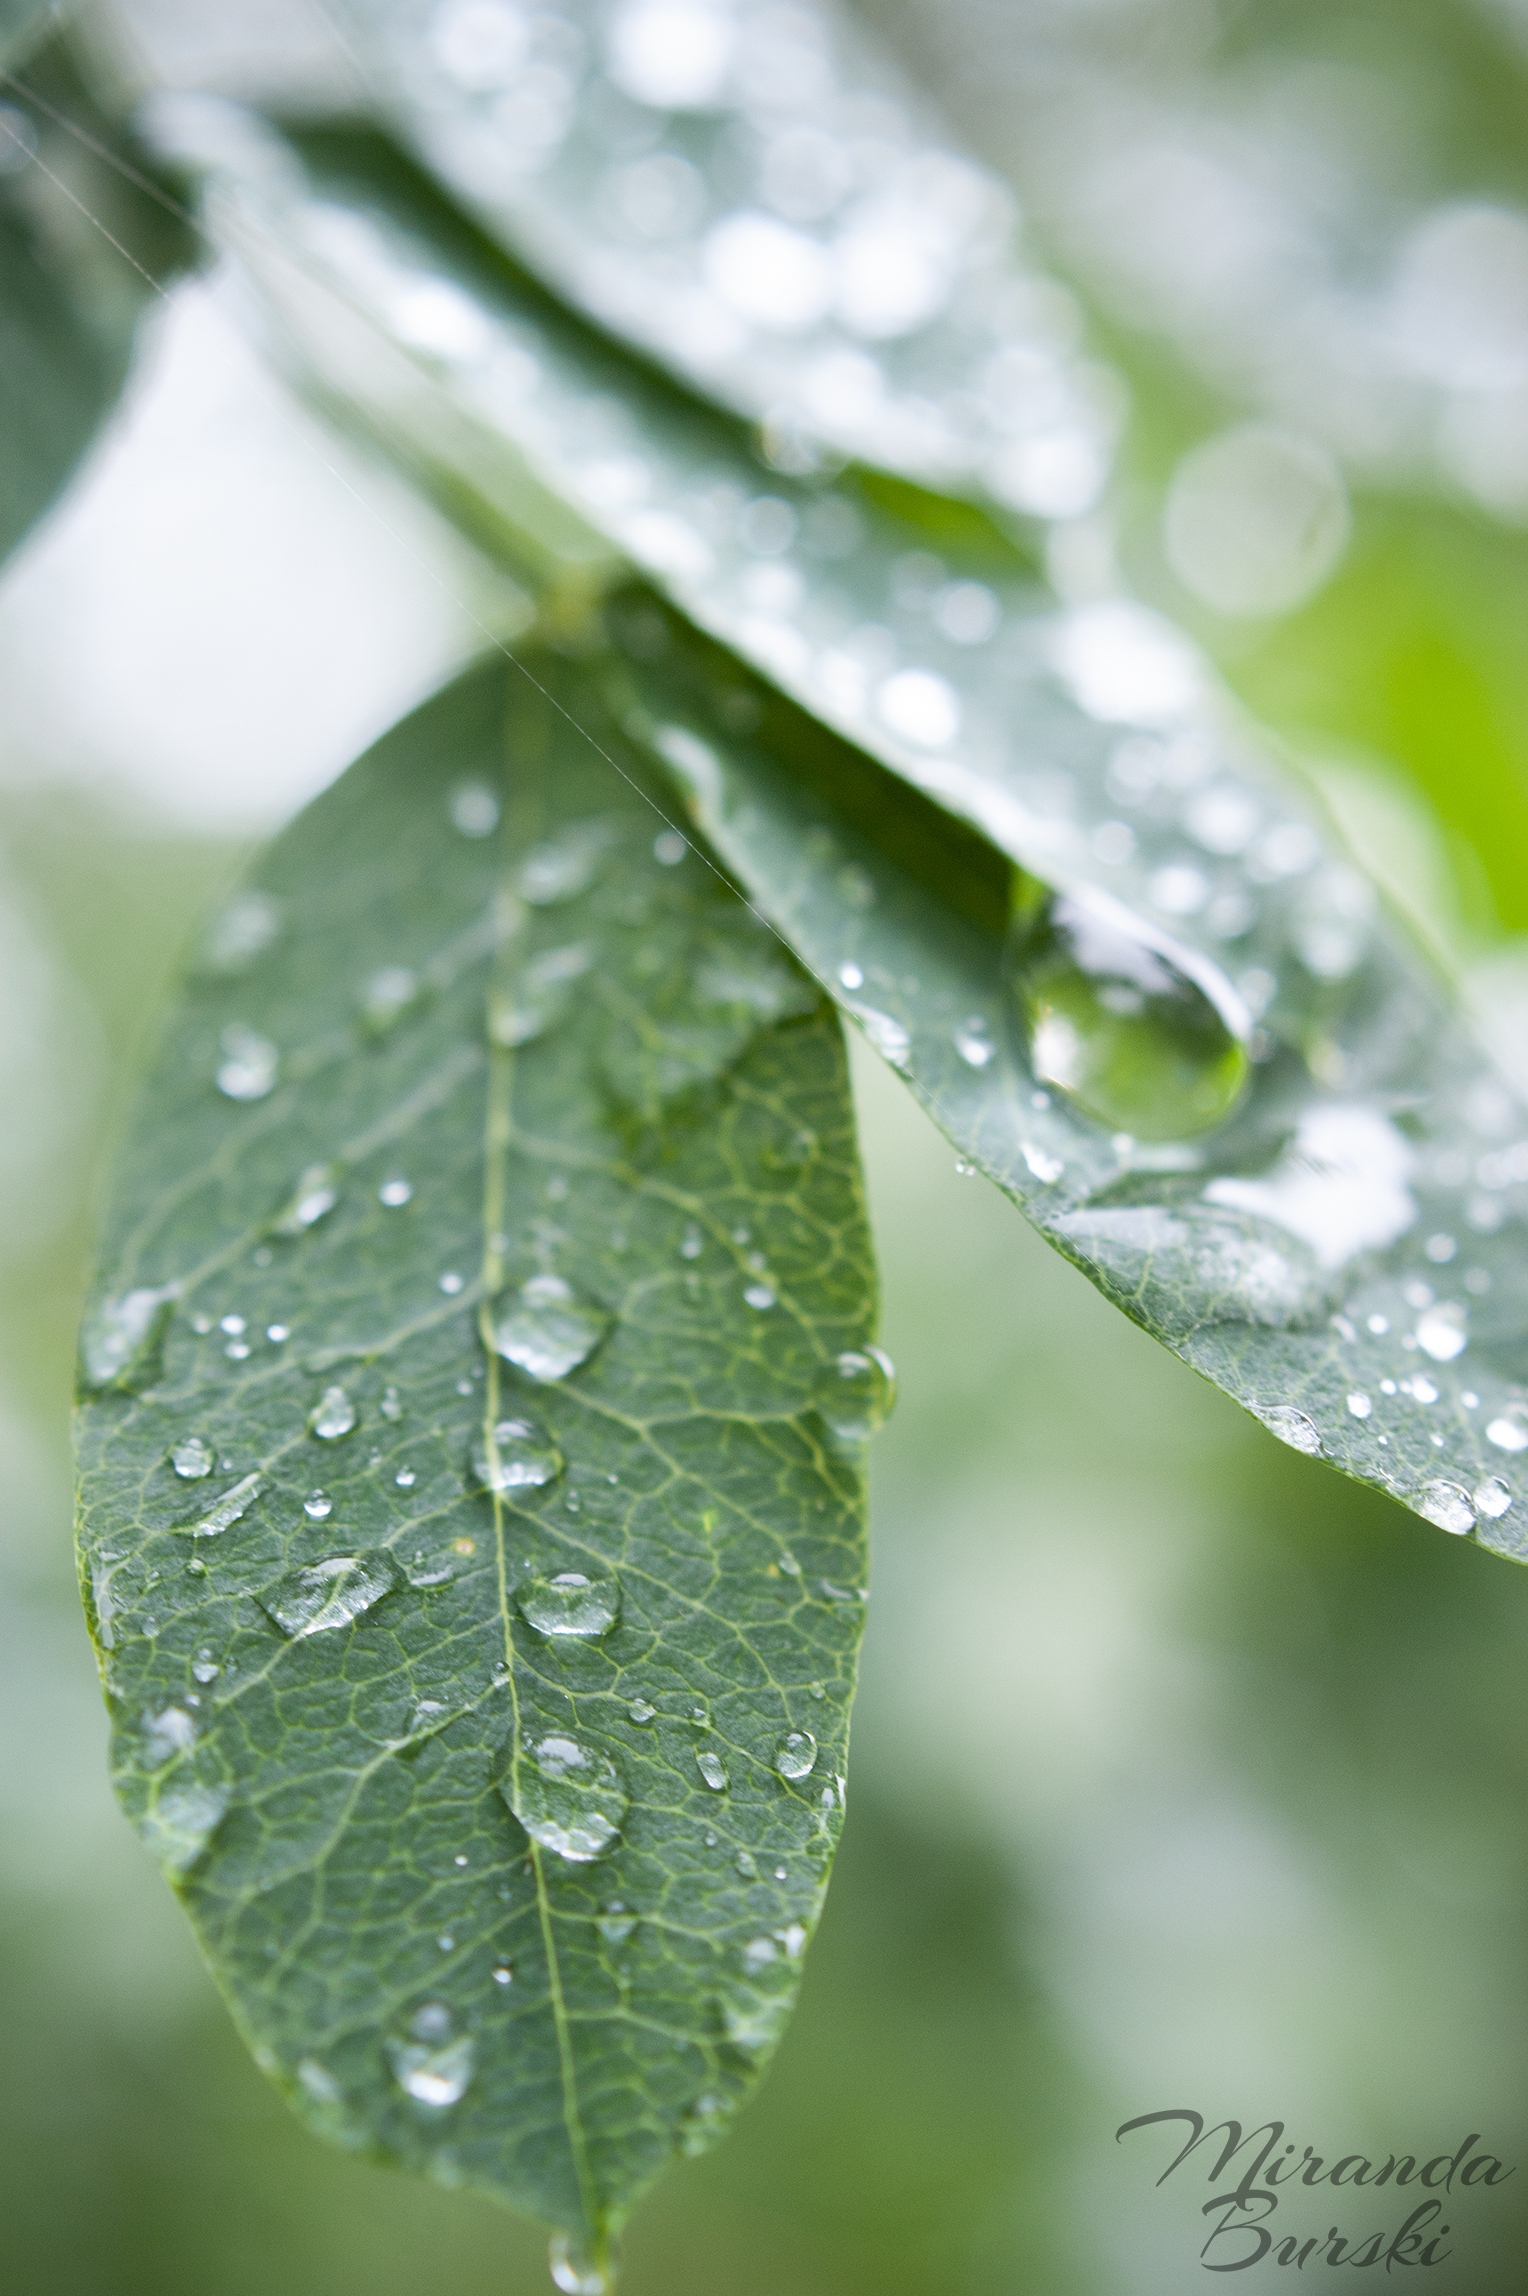 A close-up of raindrops on tree leaves.